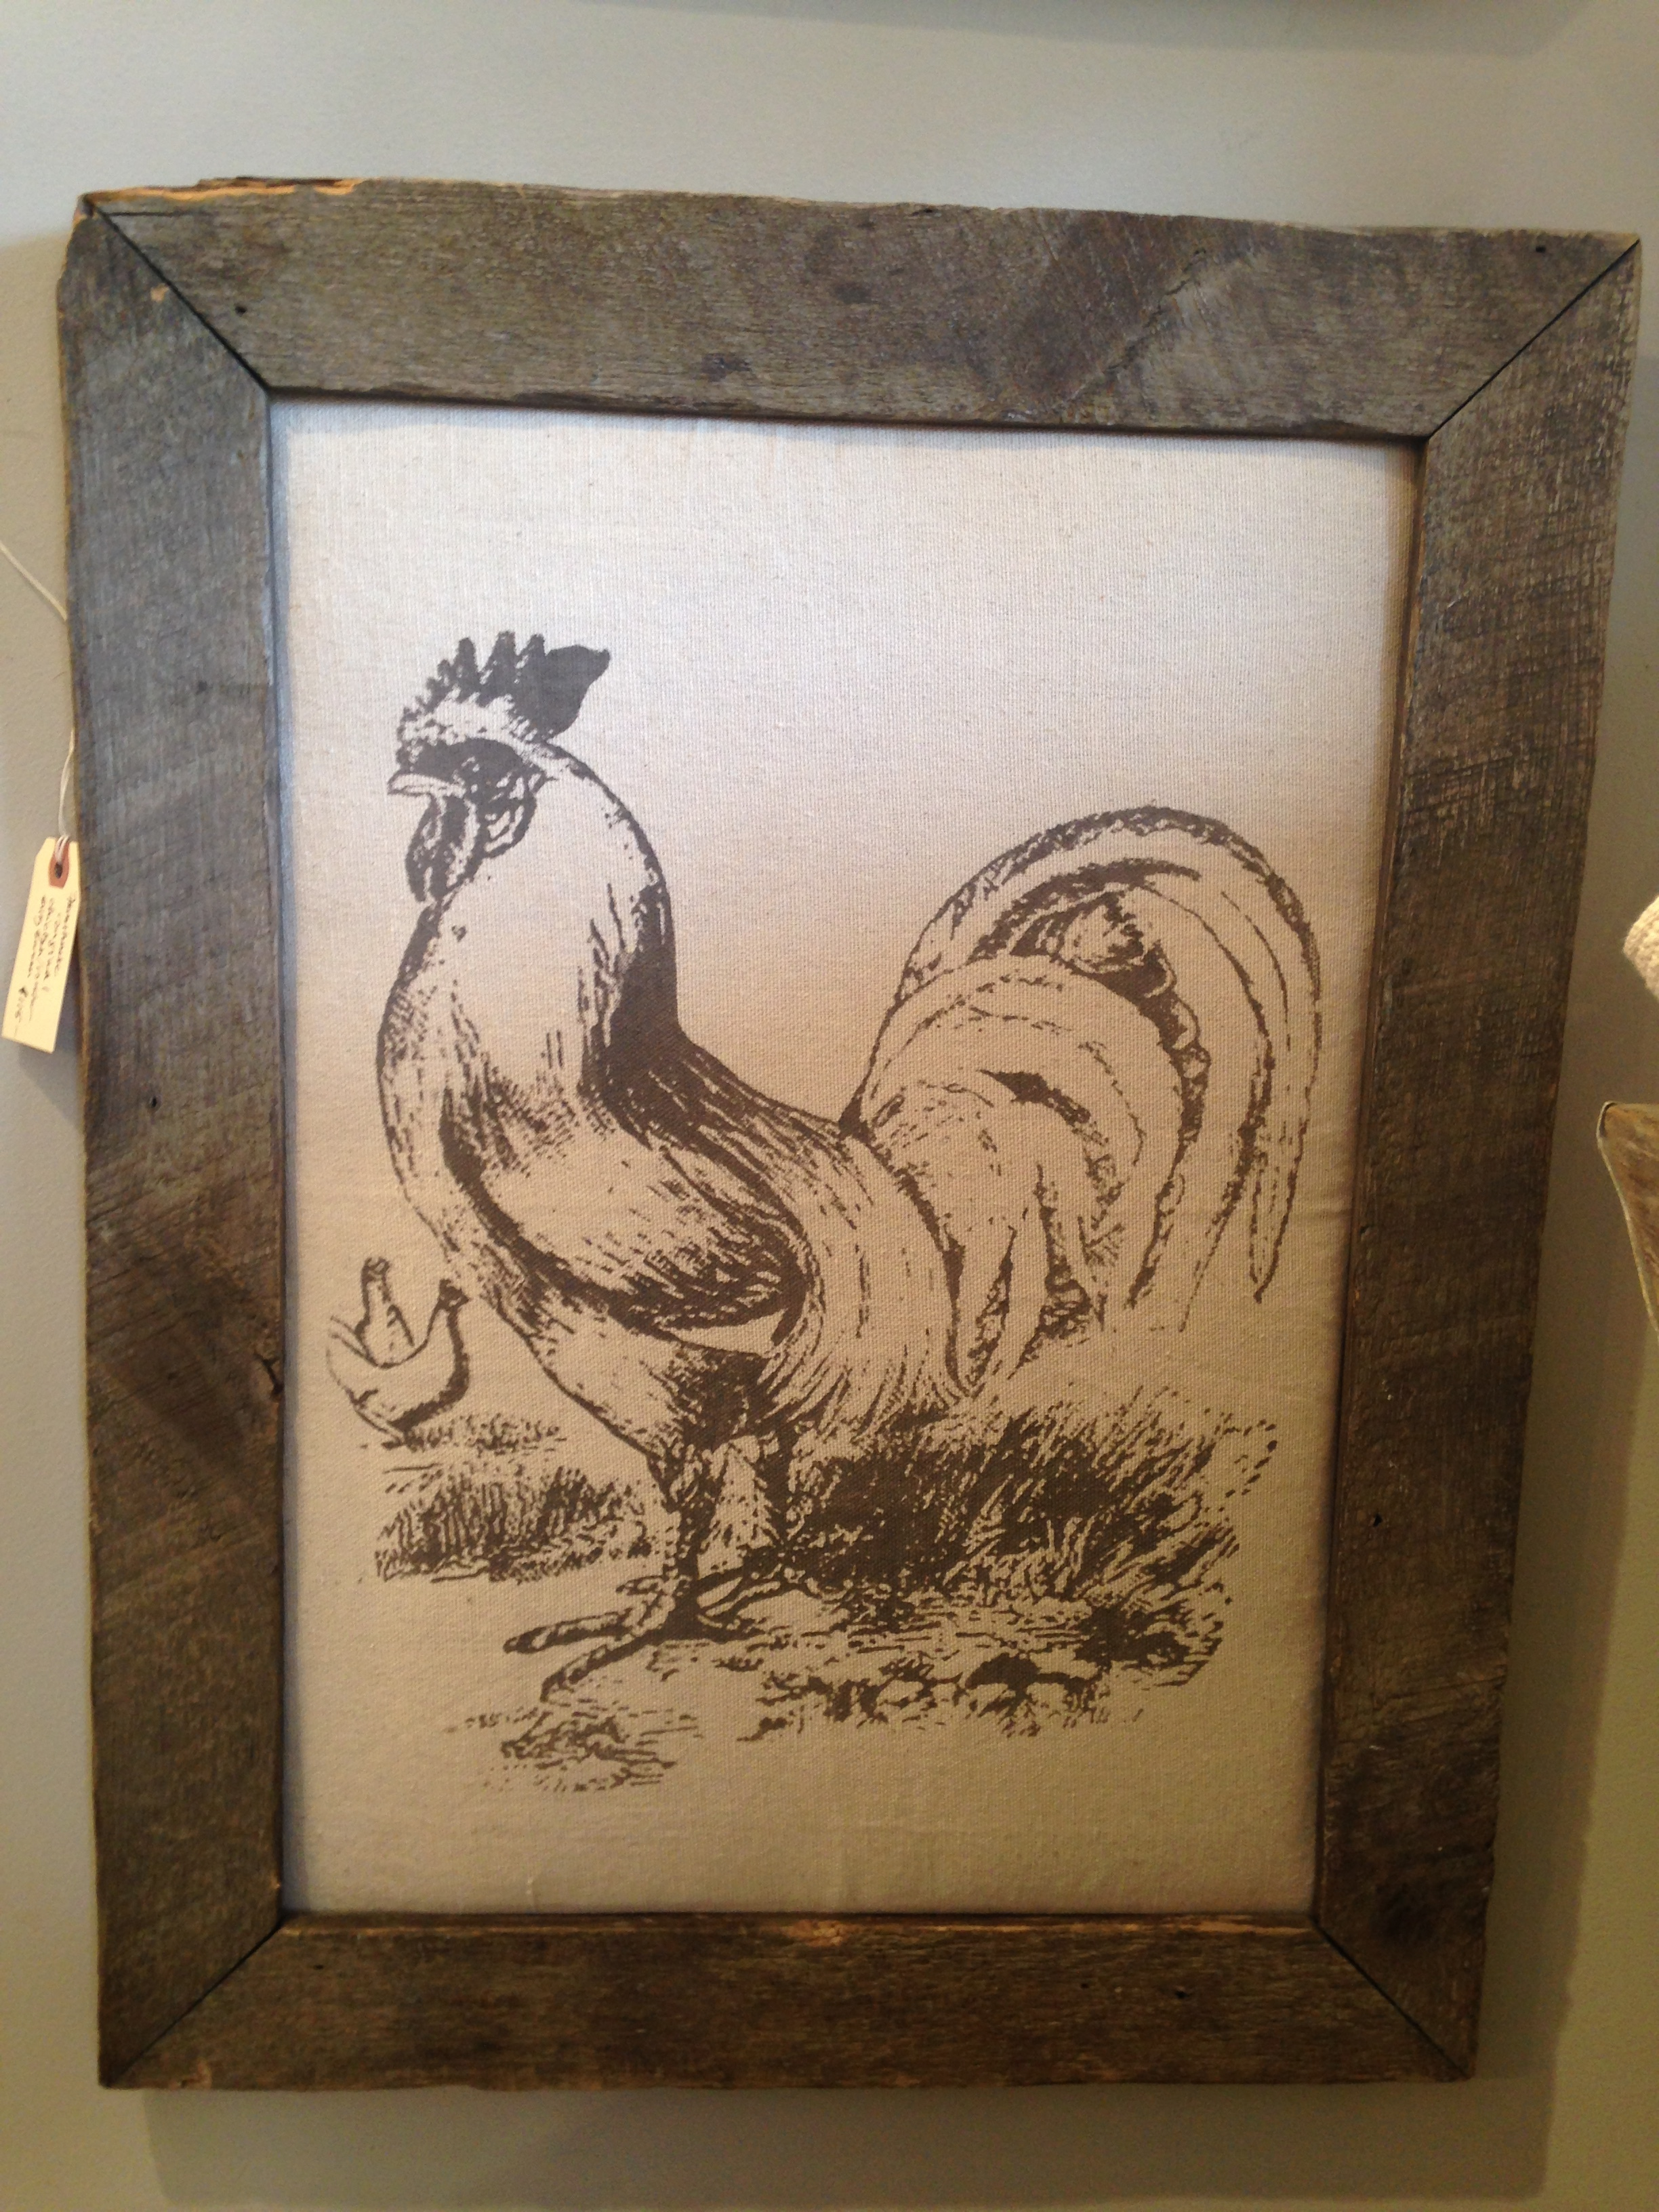 The rooster is completely at home in his barn wood frame